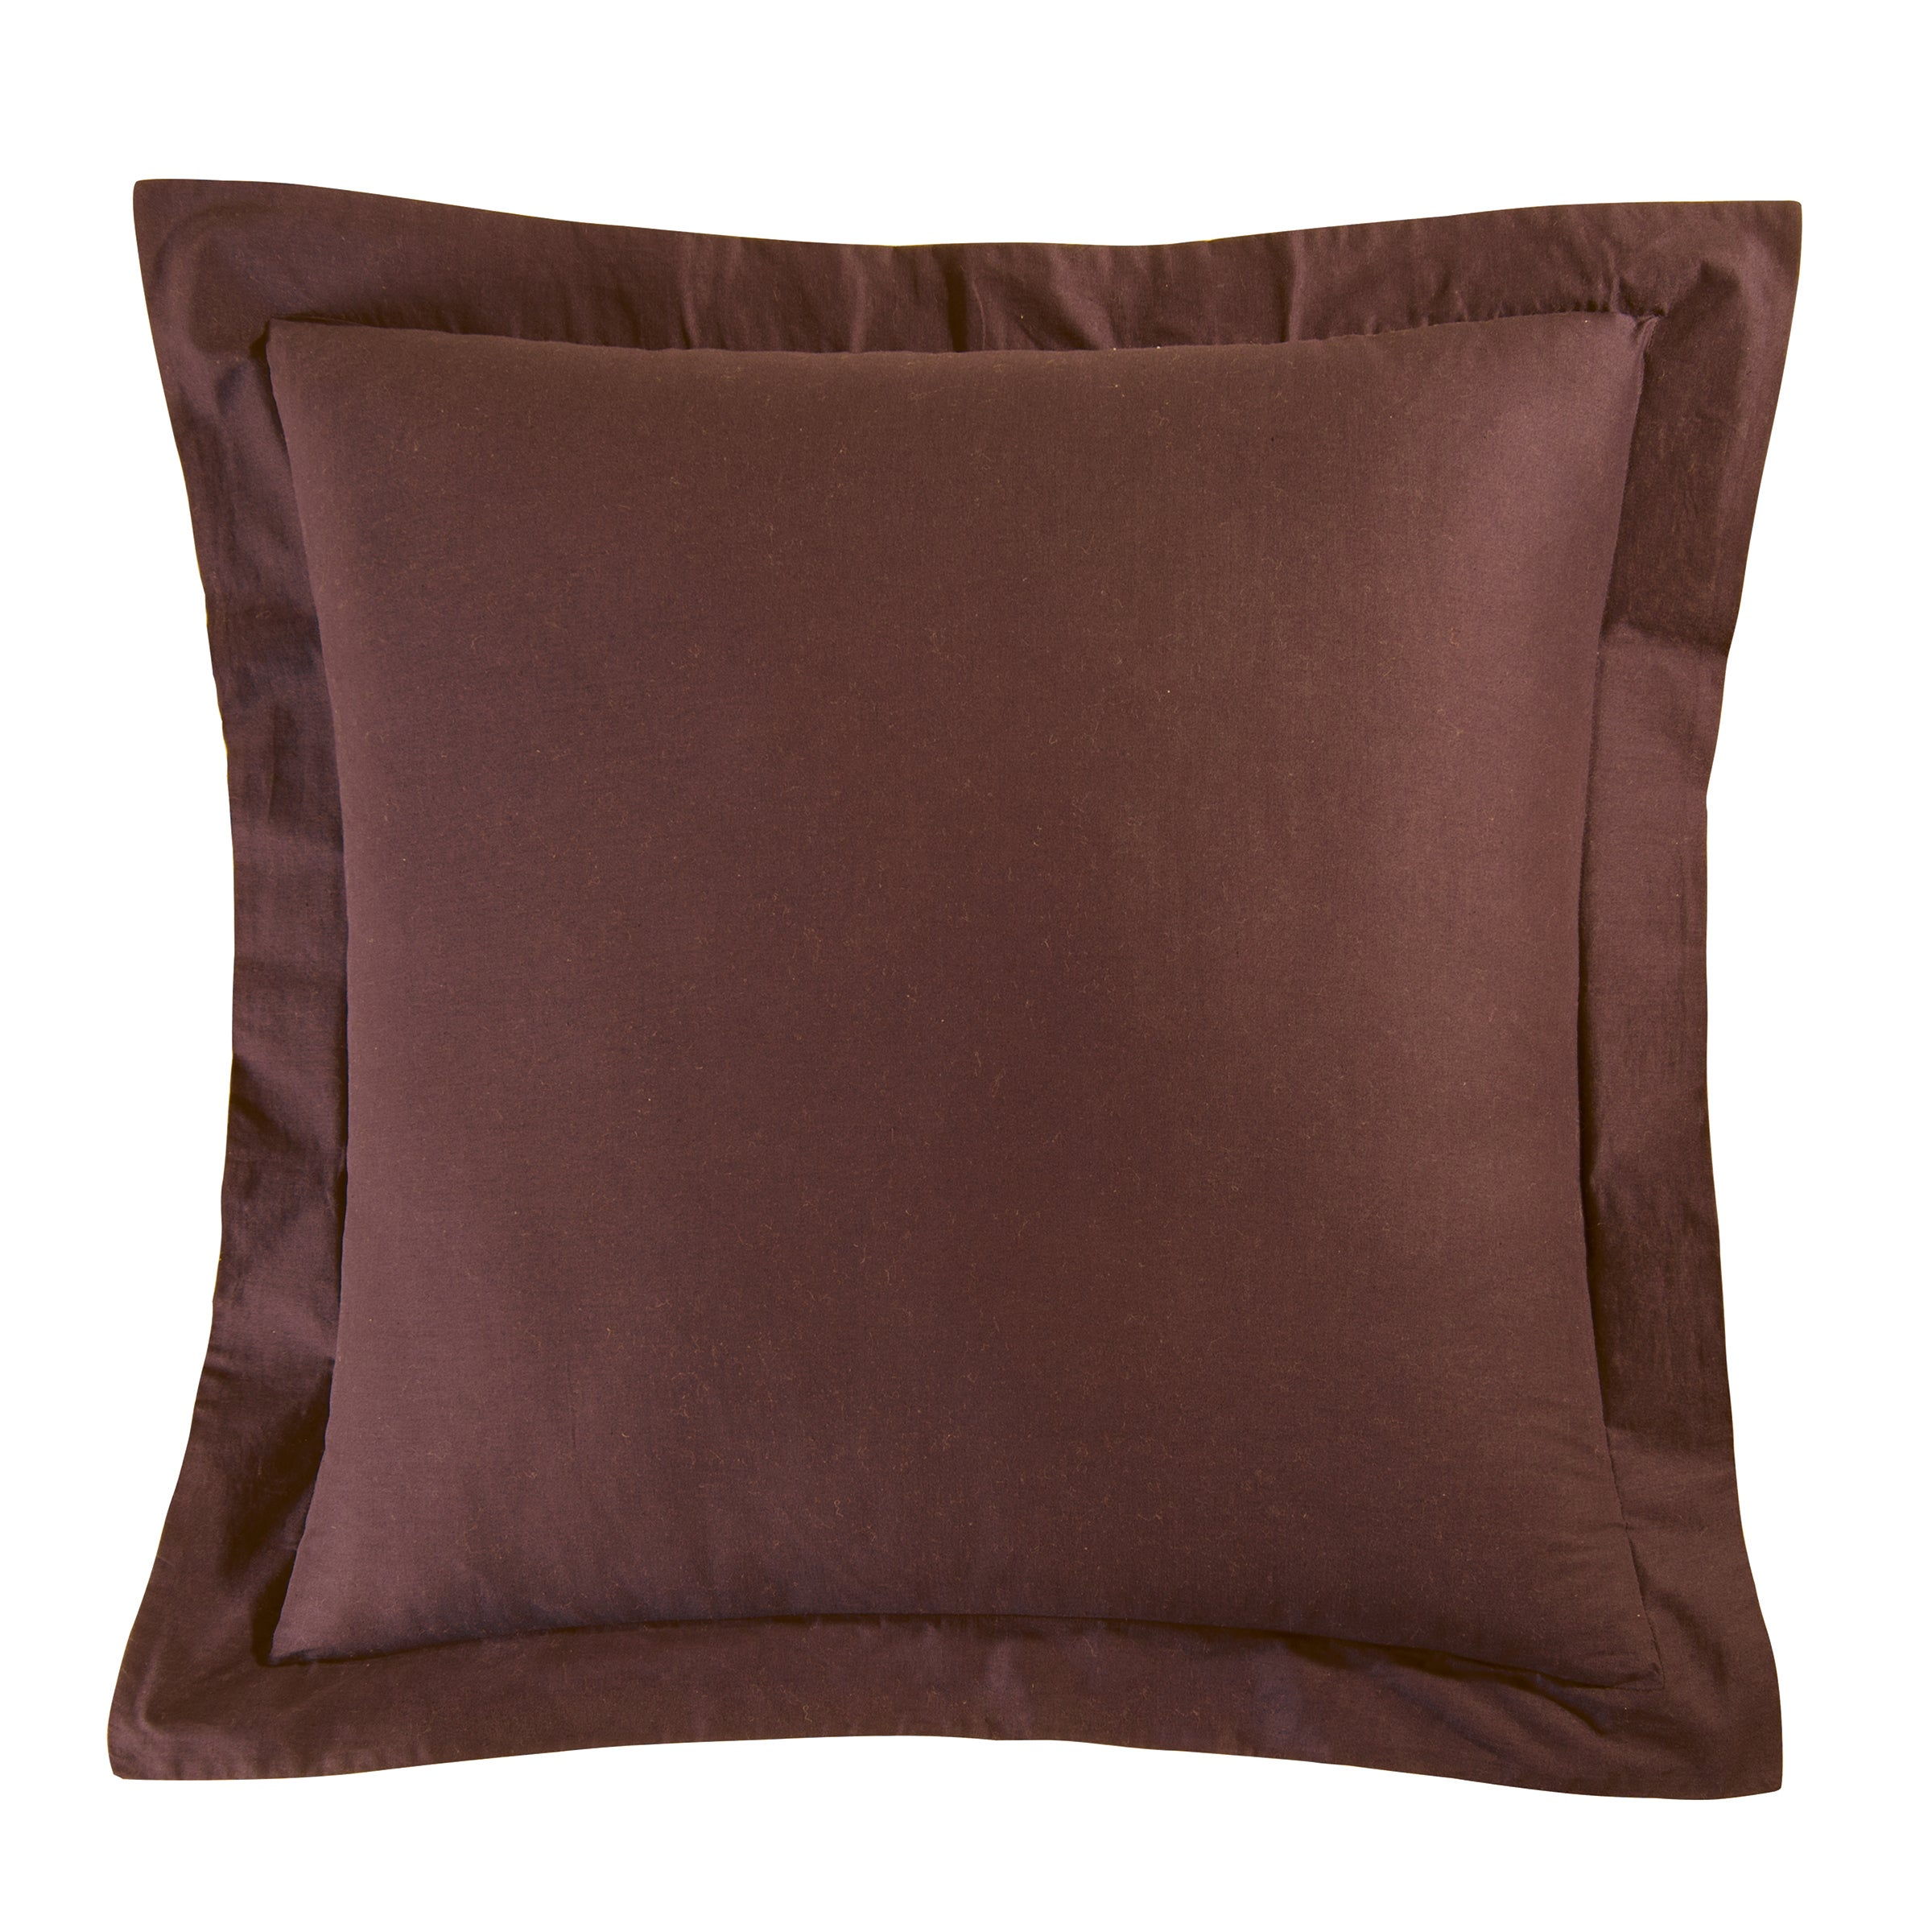 Shop Pine Canopy Superior Brown Cotton Euro Sham - On Sale - Free ...